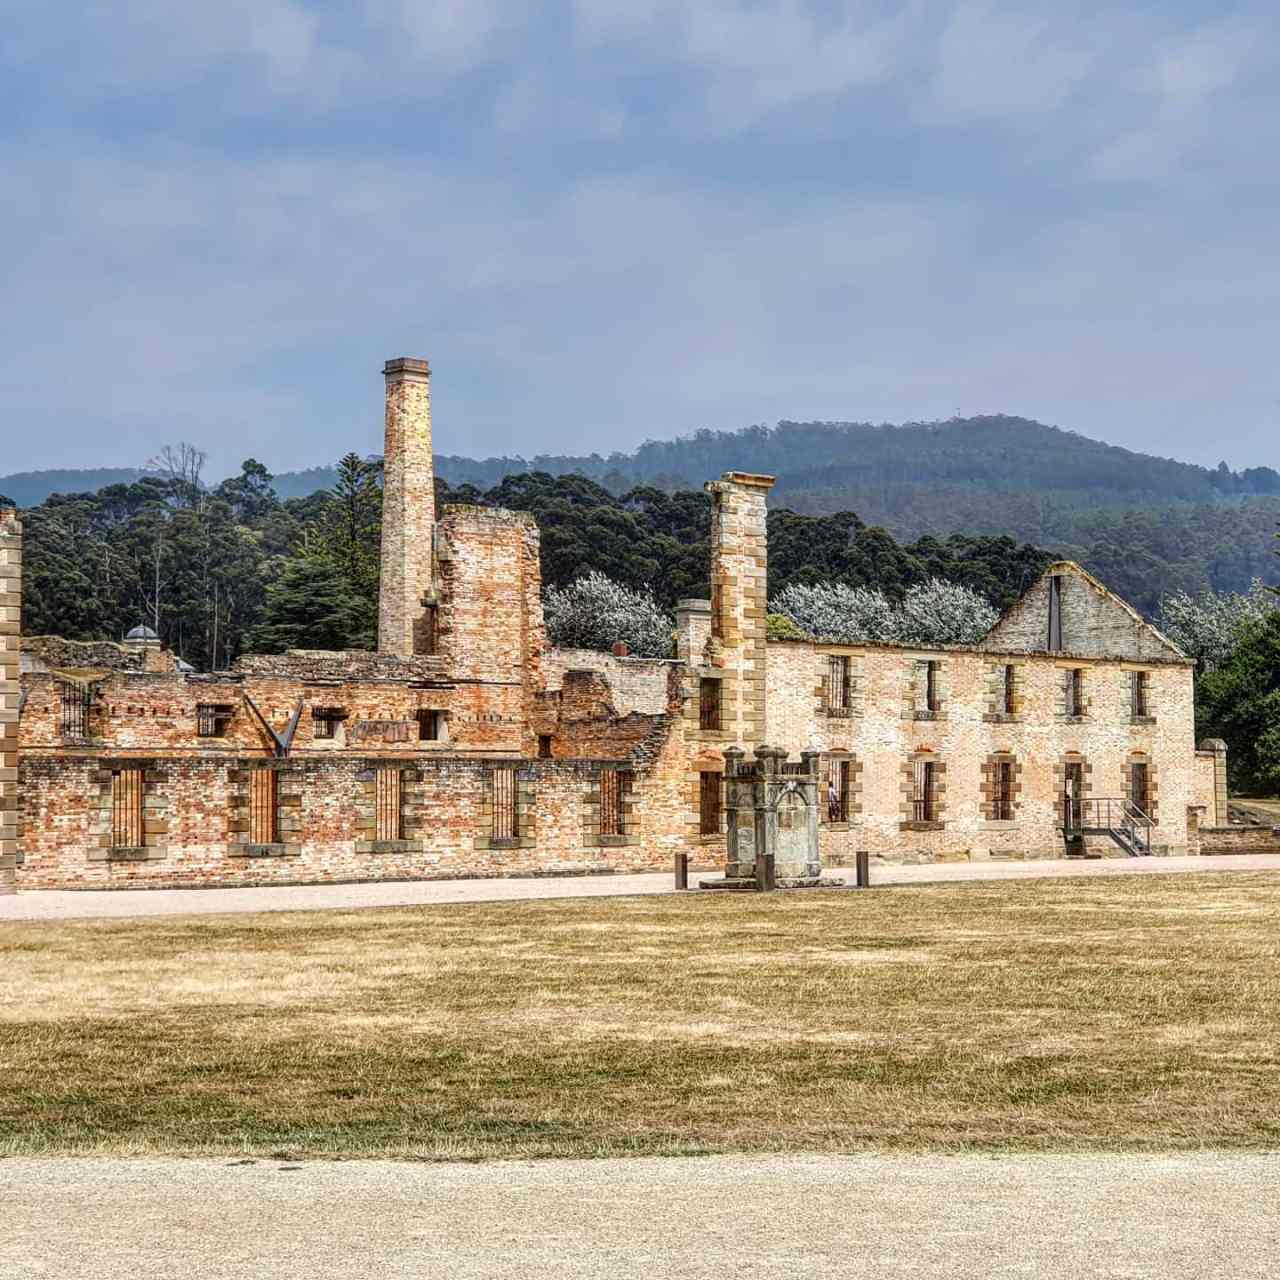 Day 137: Tassie Explorer Part 4 – Port Arthur and Prison History